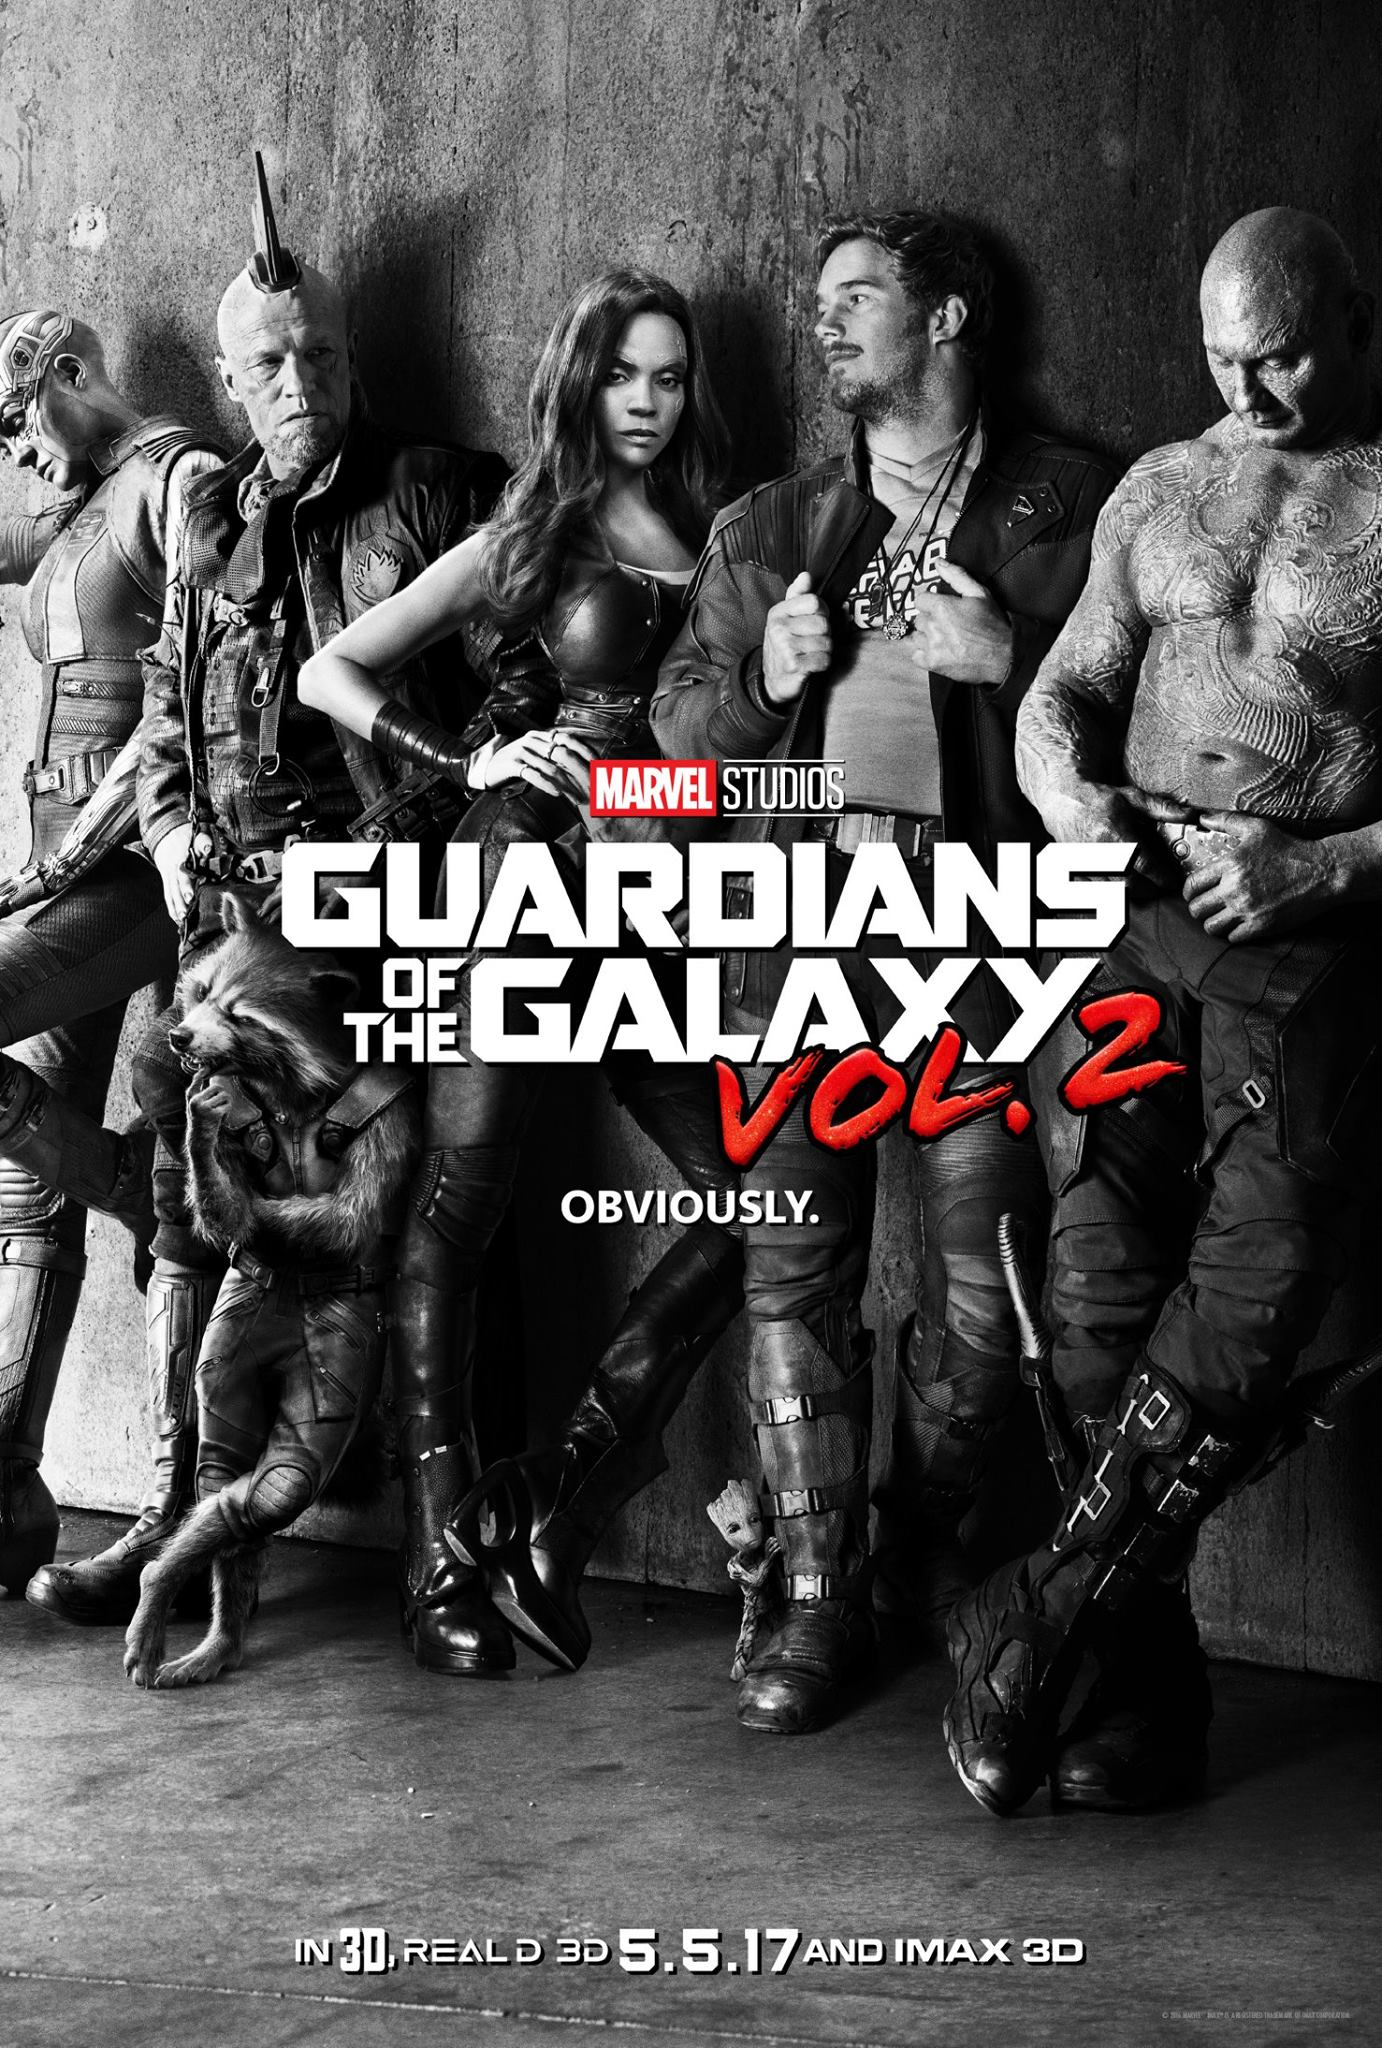 guardians-vol-2-poster-header